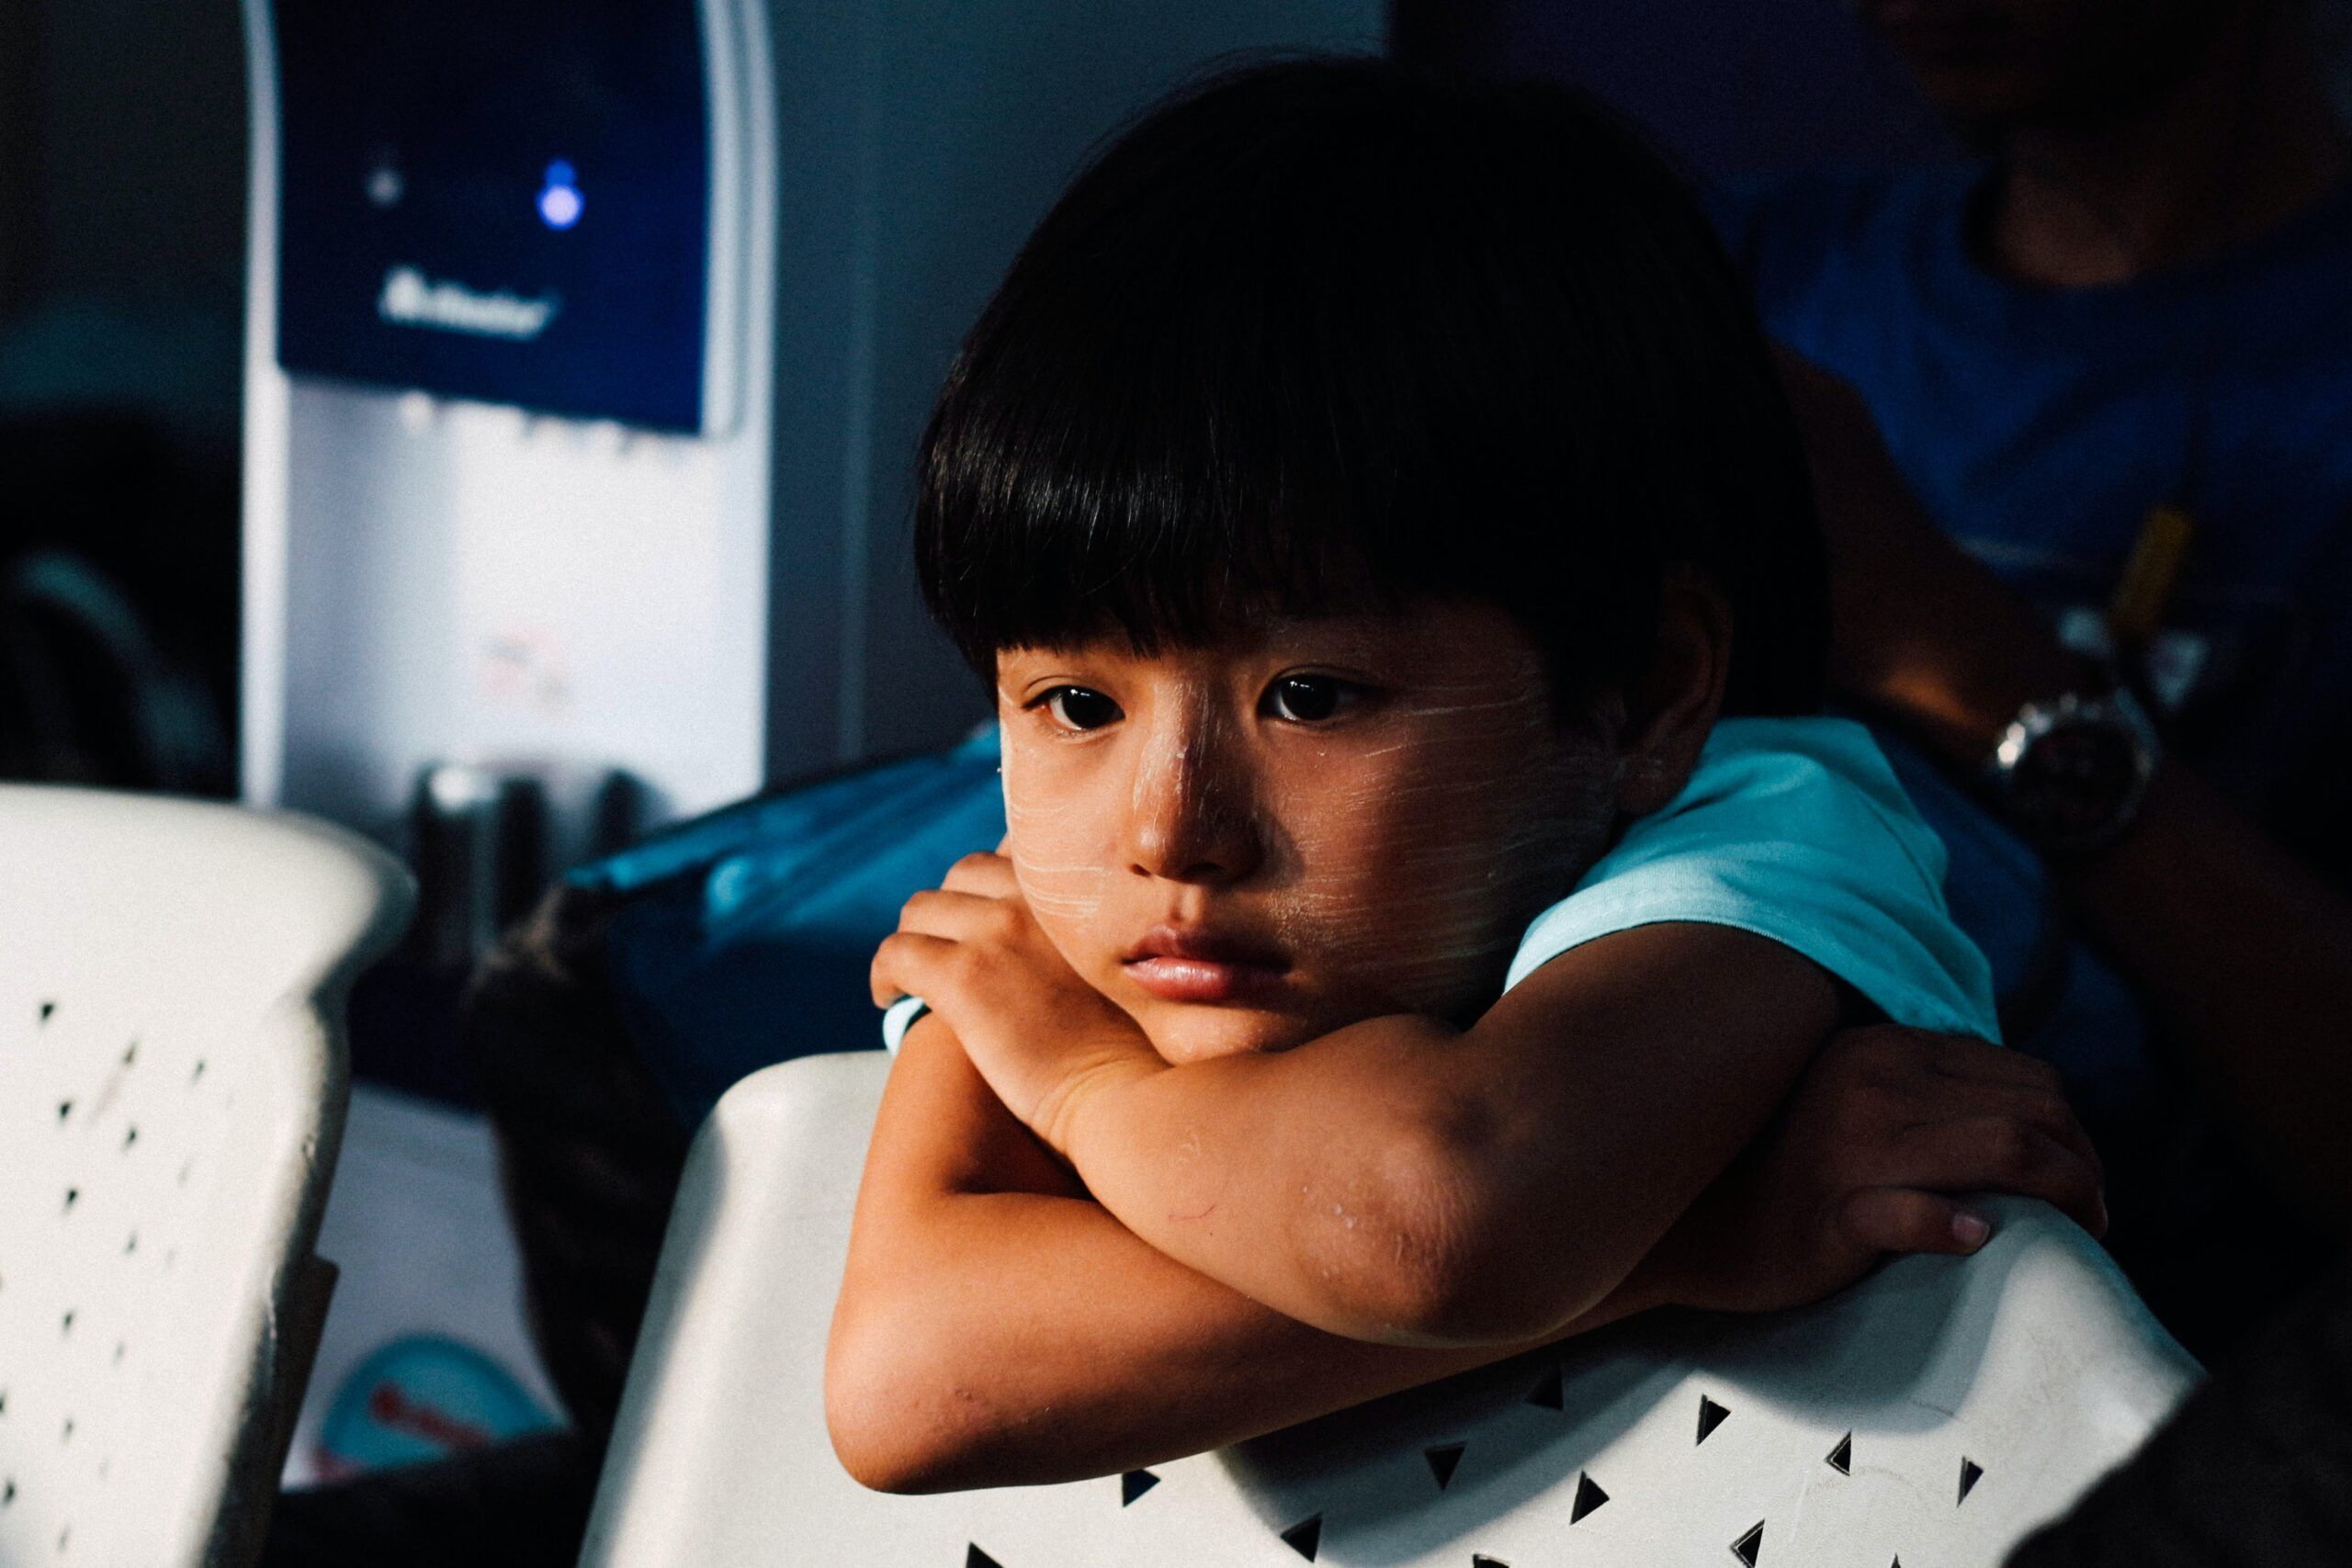 sad child leaning on a chair